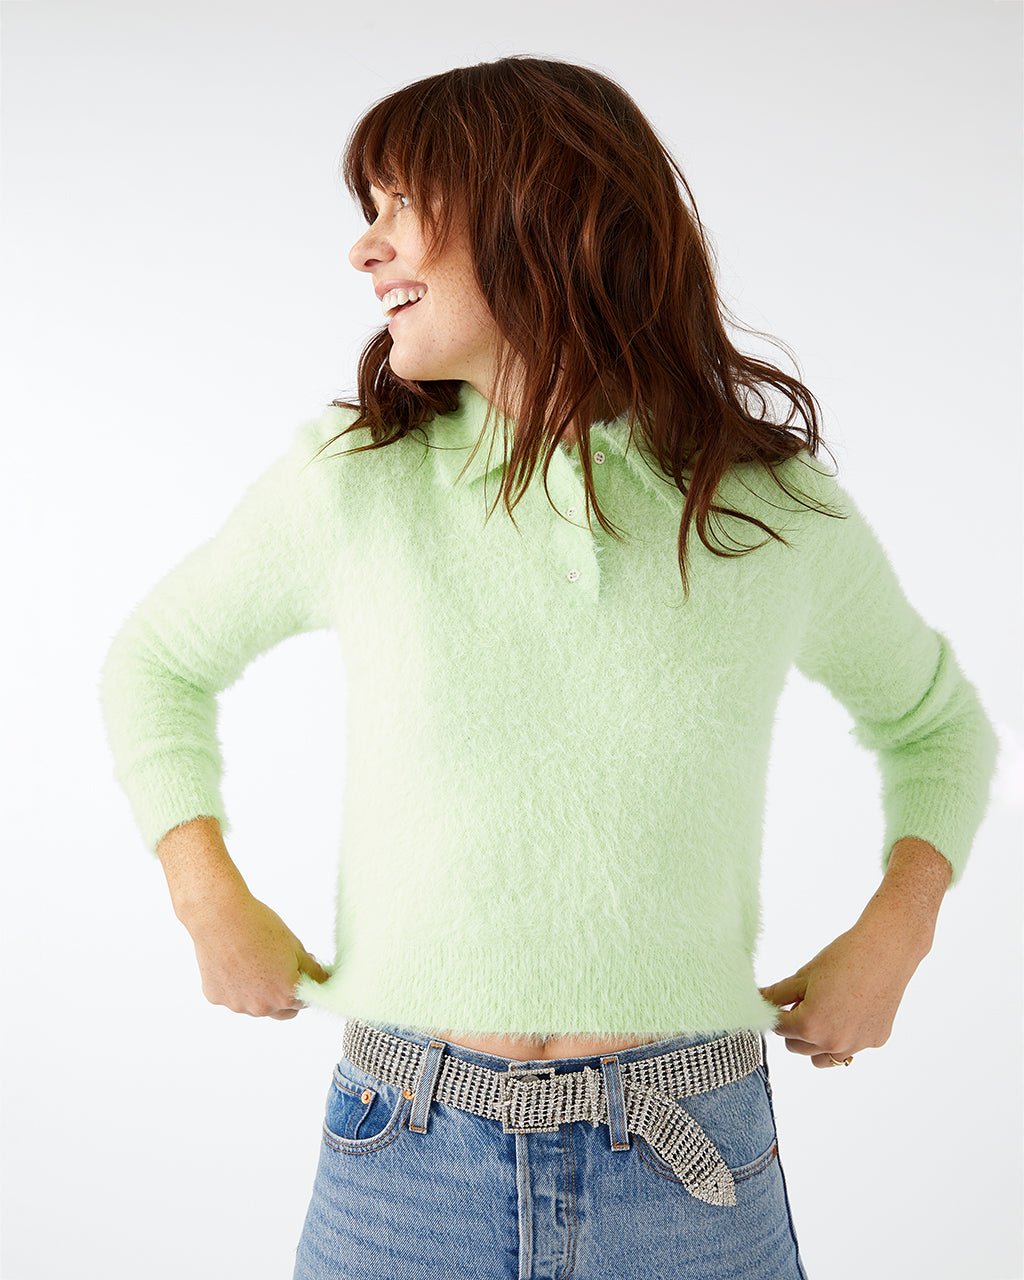 Neon lime green polo sweater.